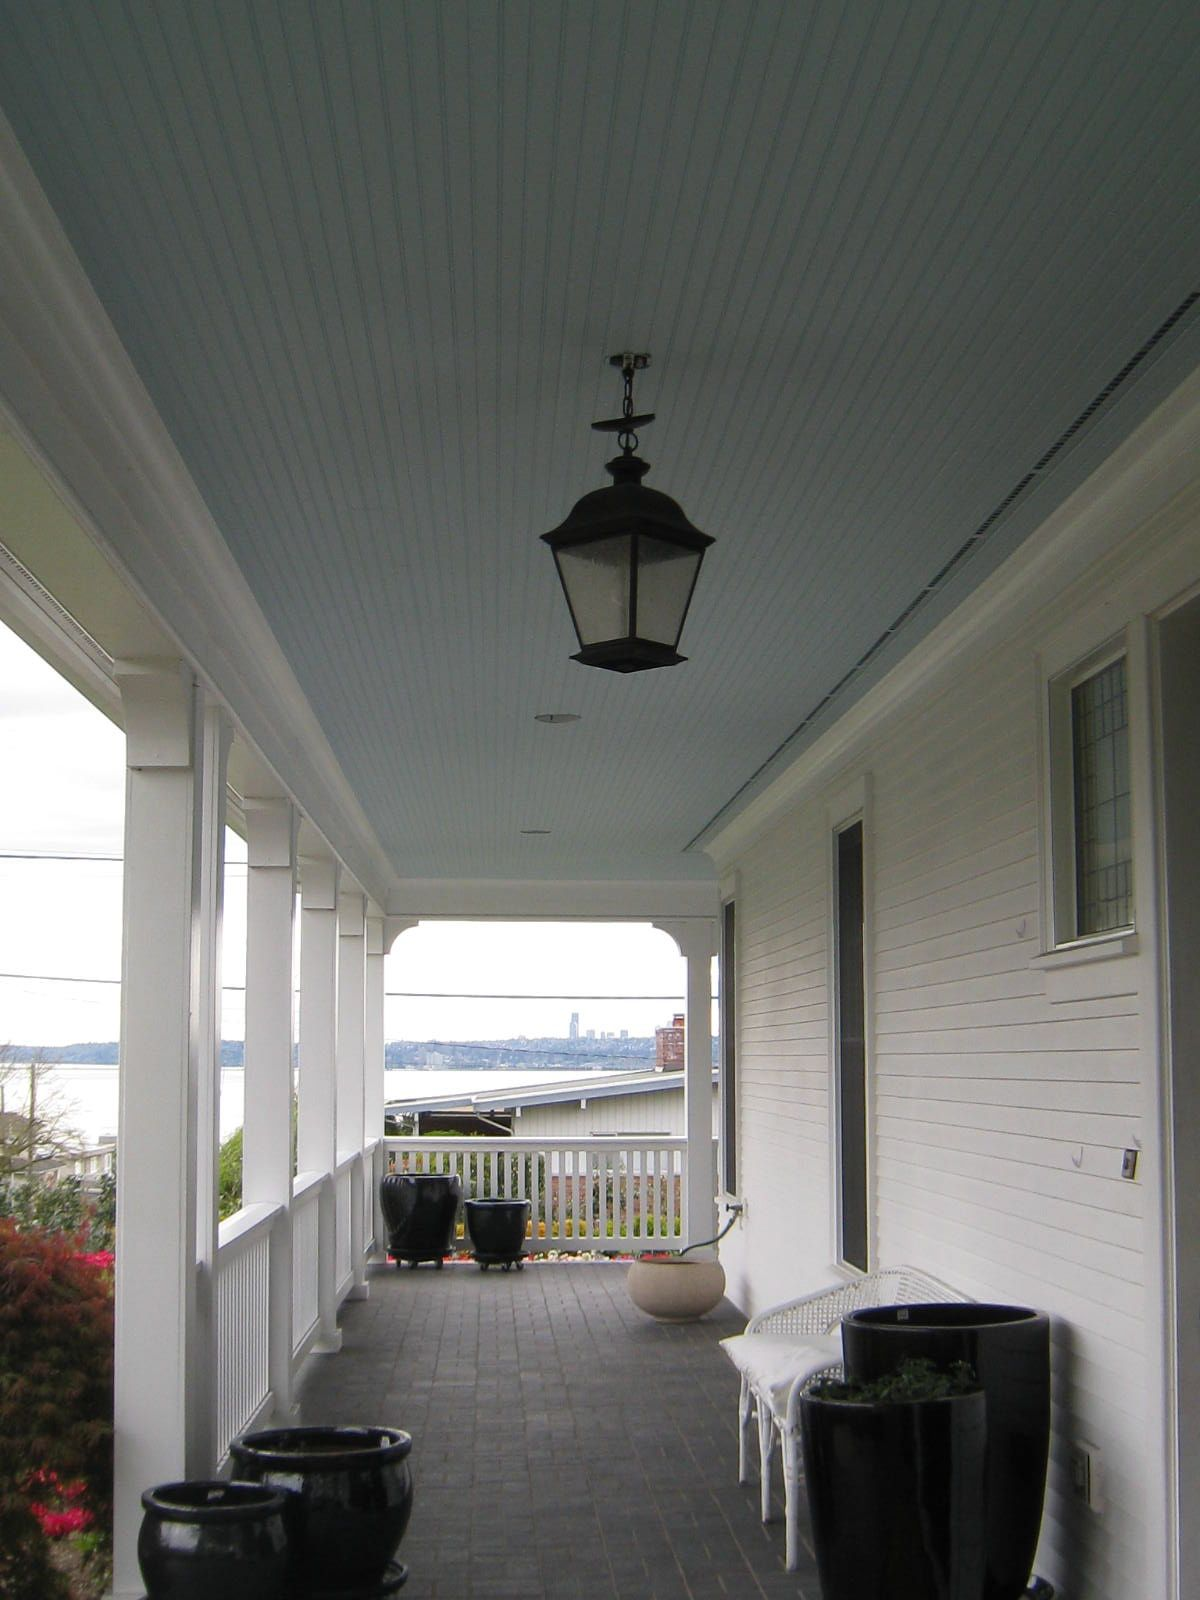 Sherwin Williams Atmospheric 6505 Paint Blue Porch Ceiling